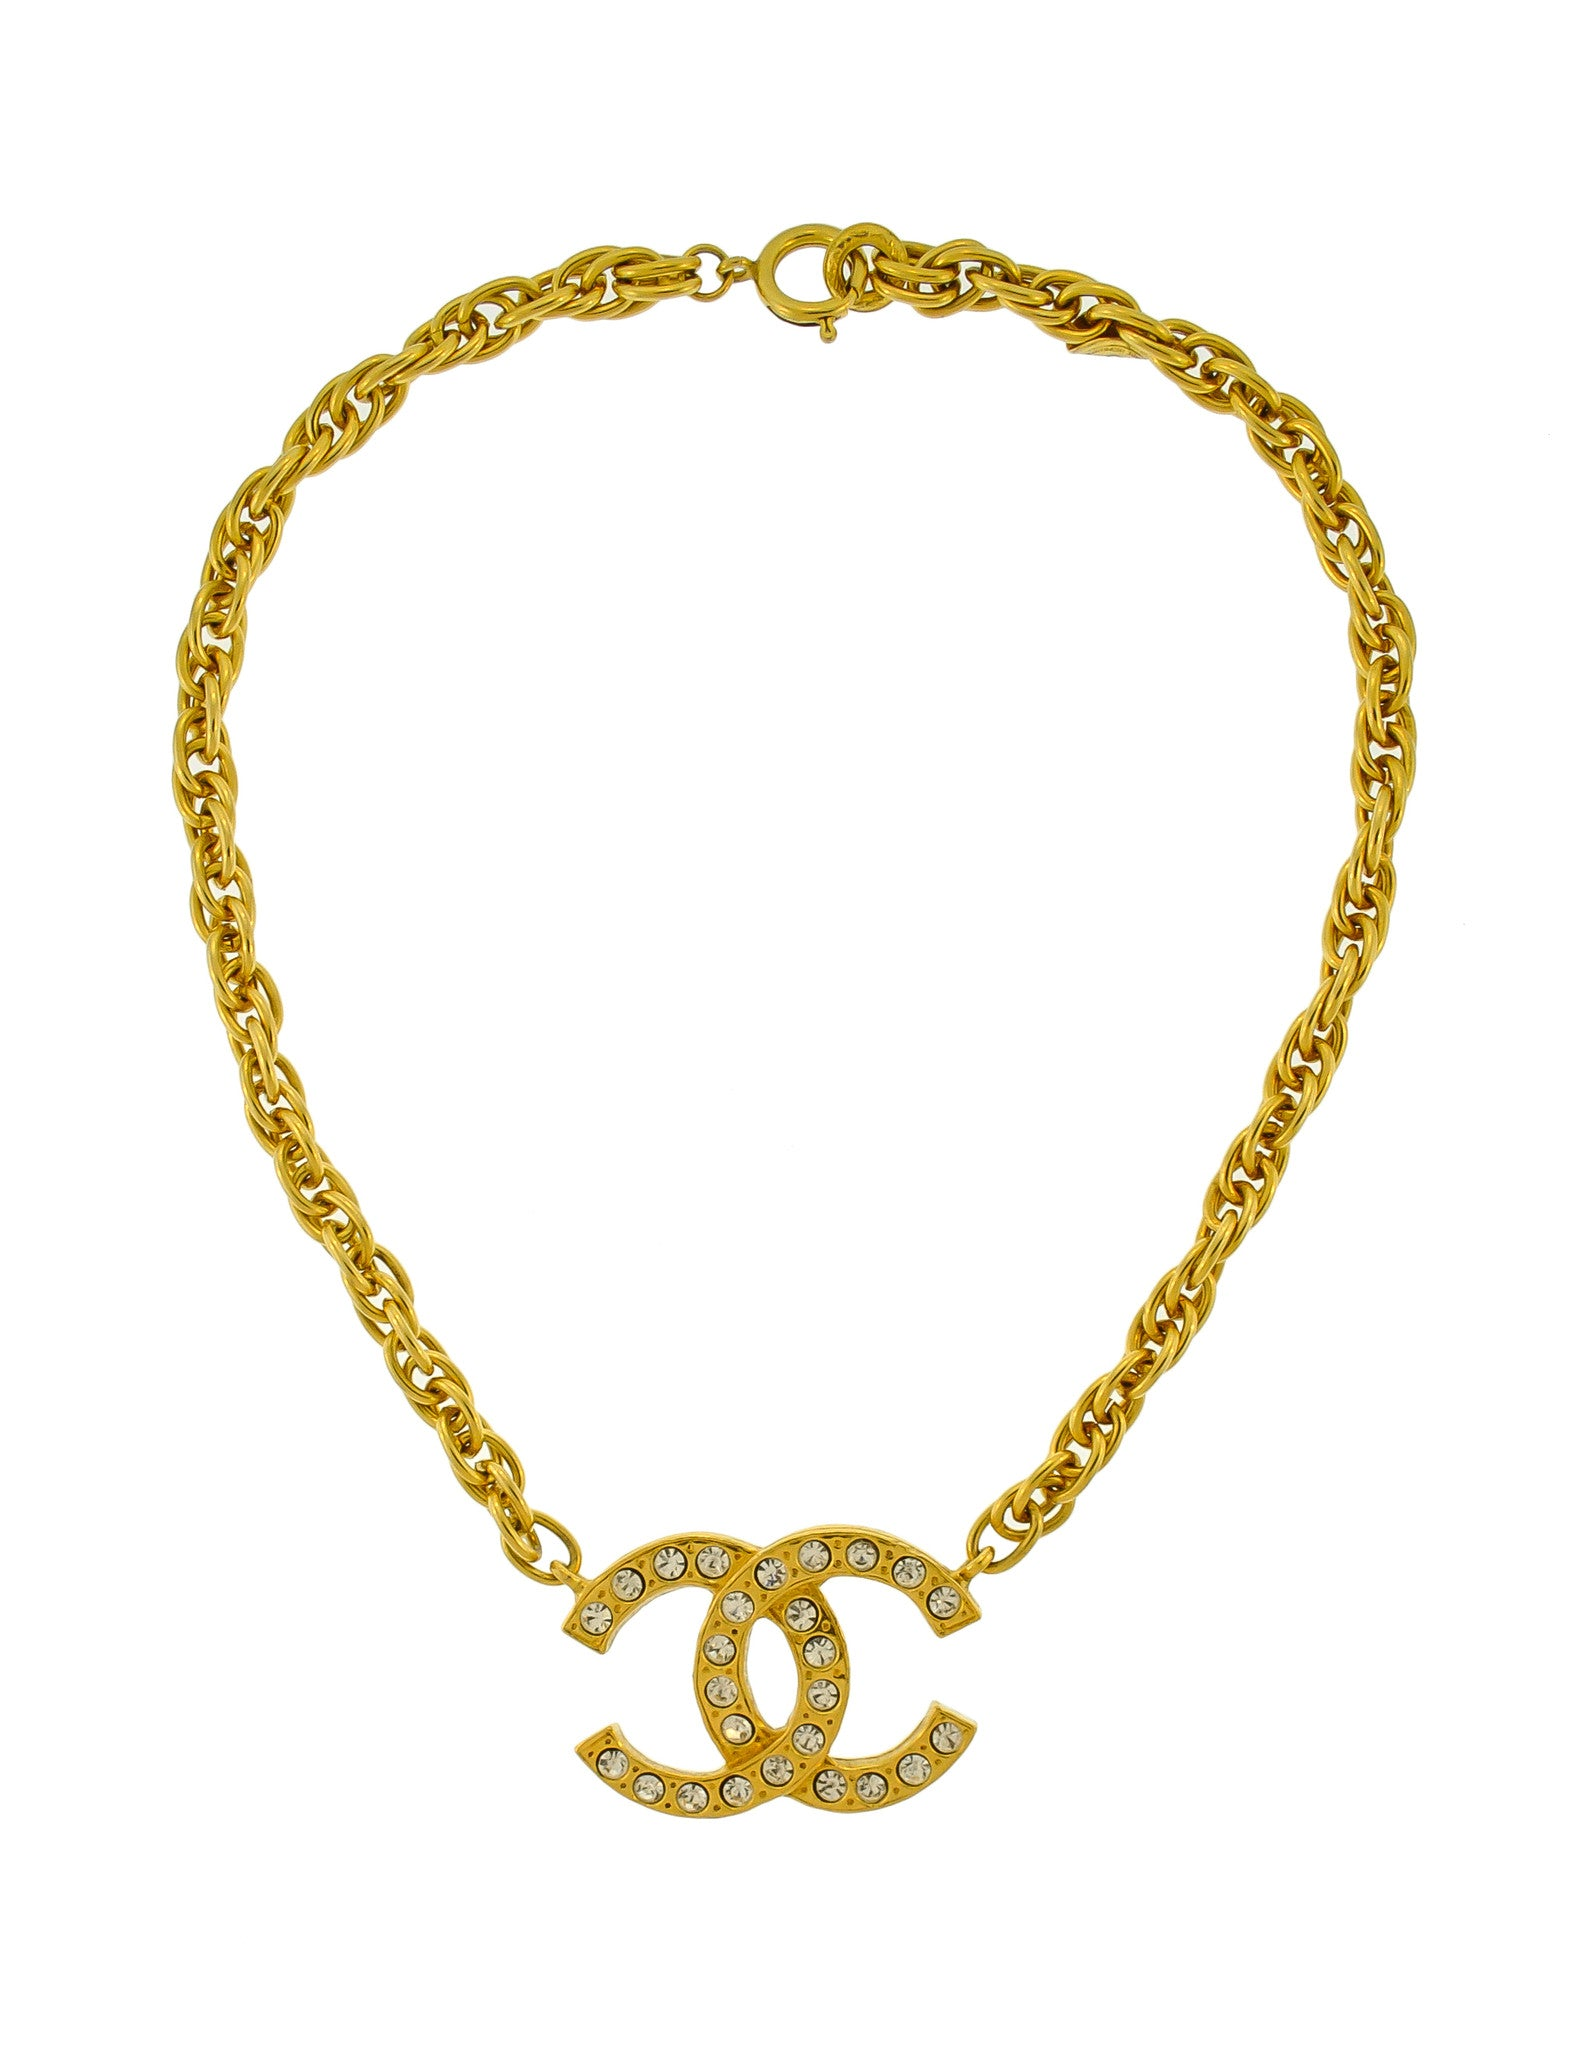 Chanel Vintage Gold Rhinestone CC Logo Necklace - Amarcord Vintage Fashion  - 1